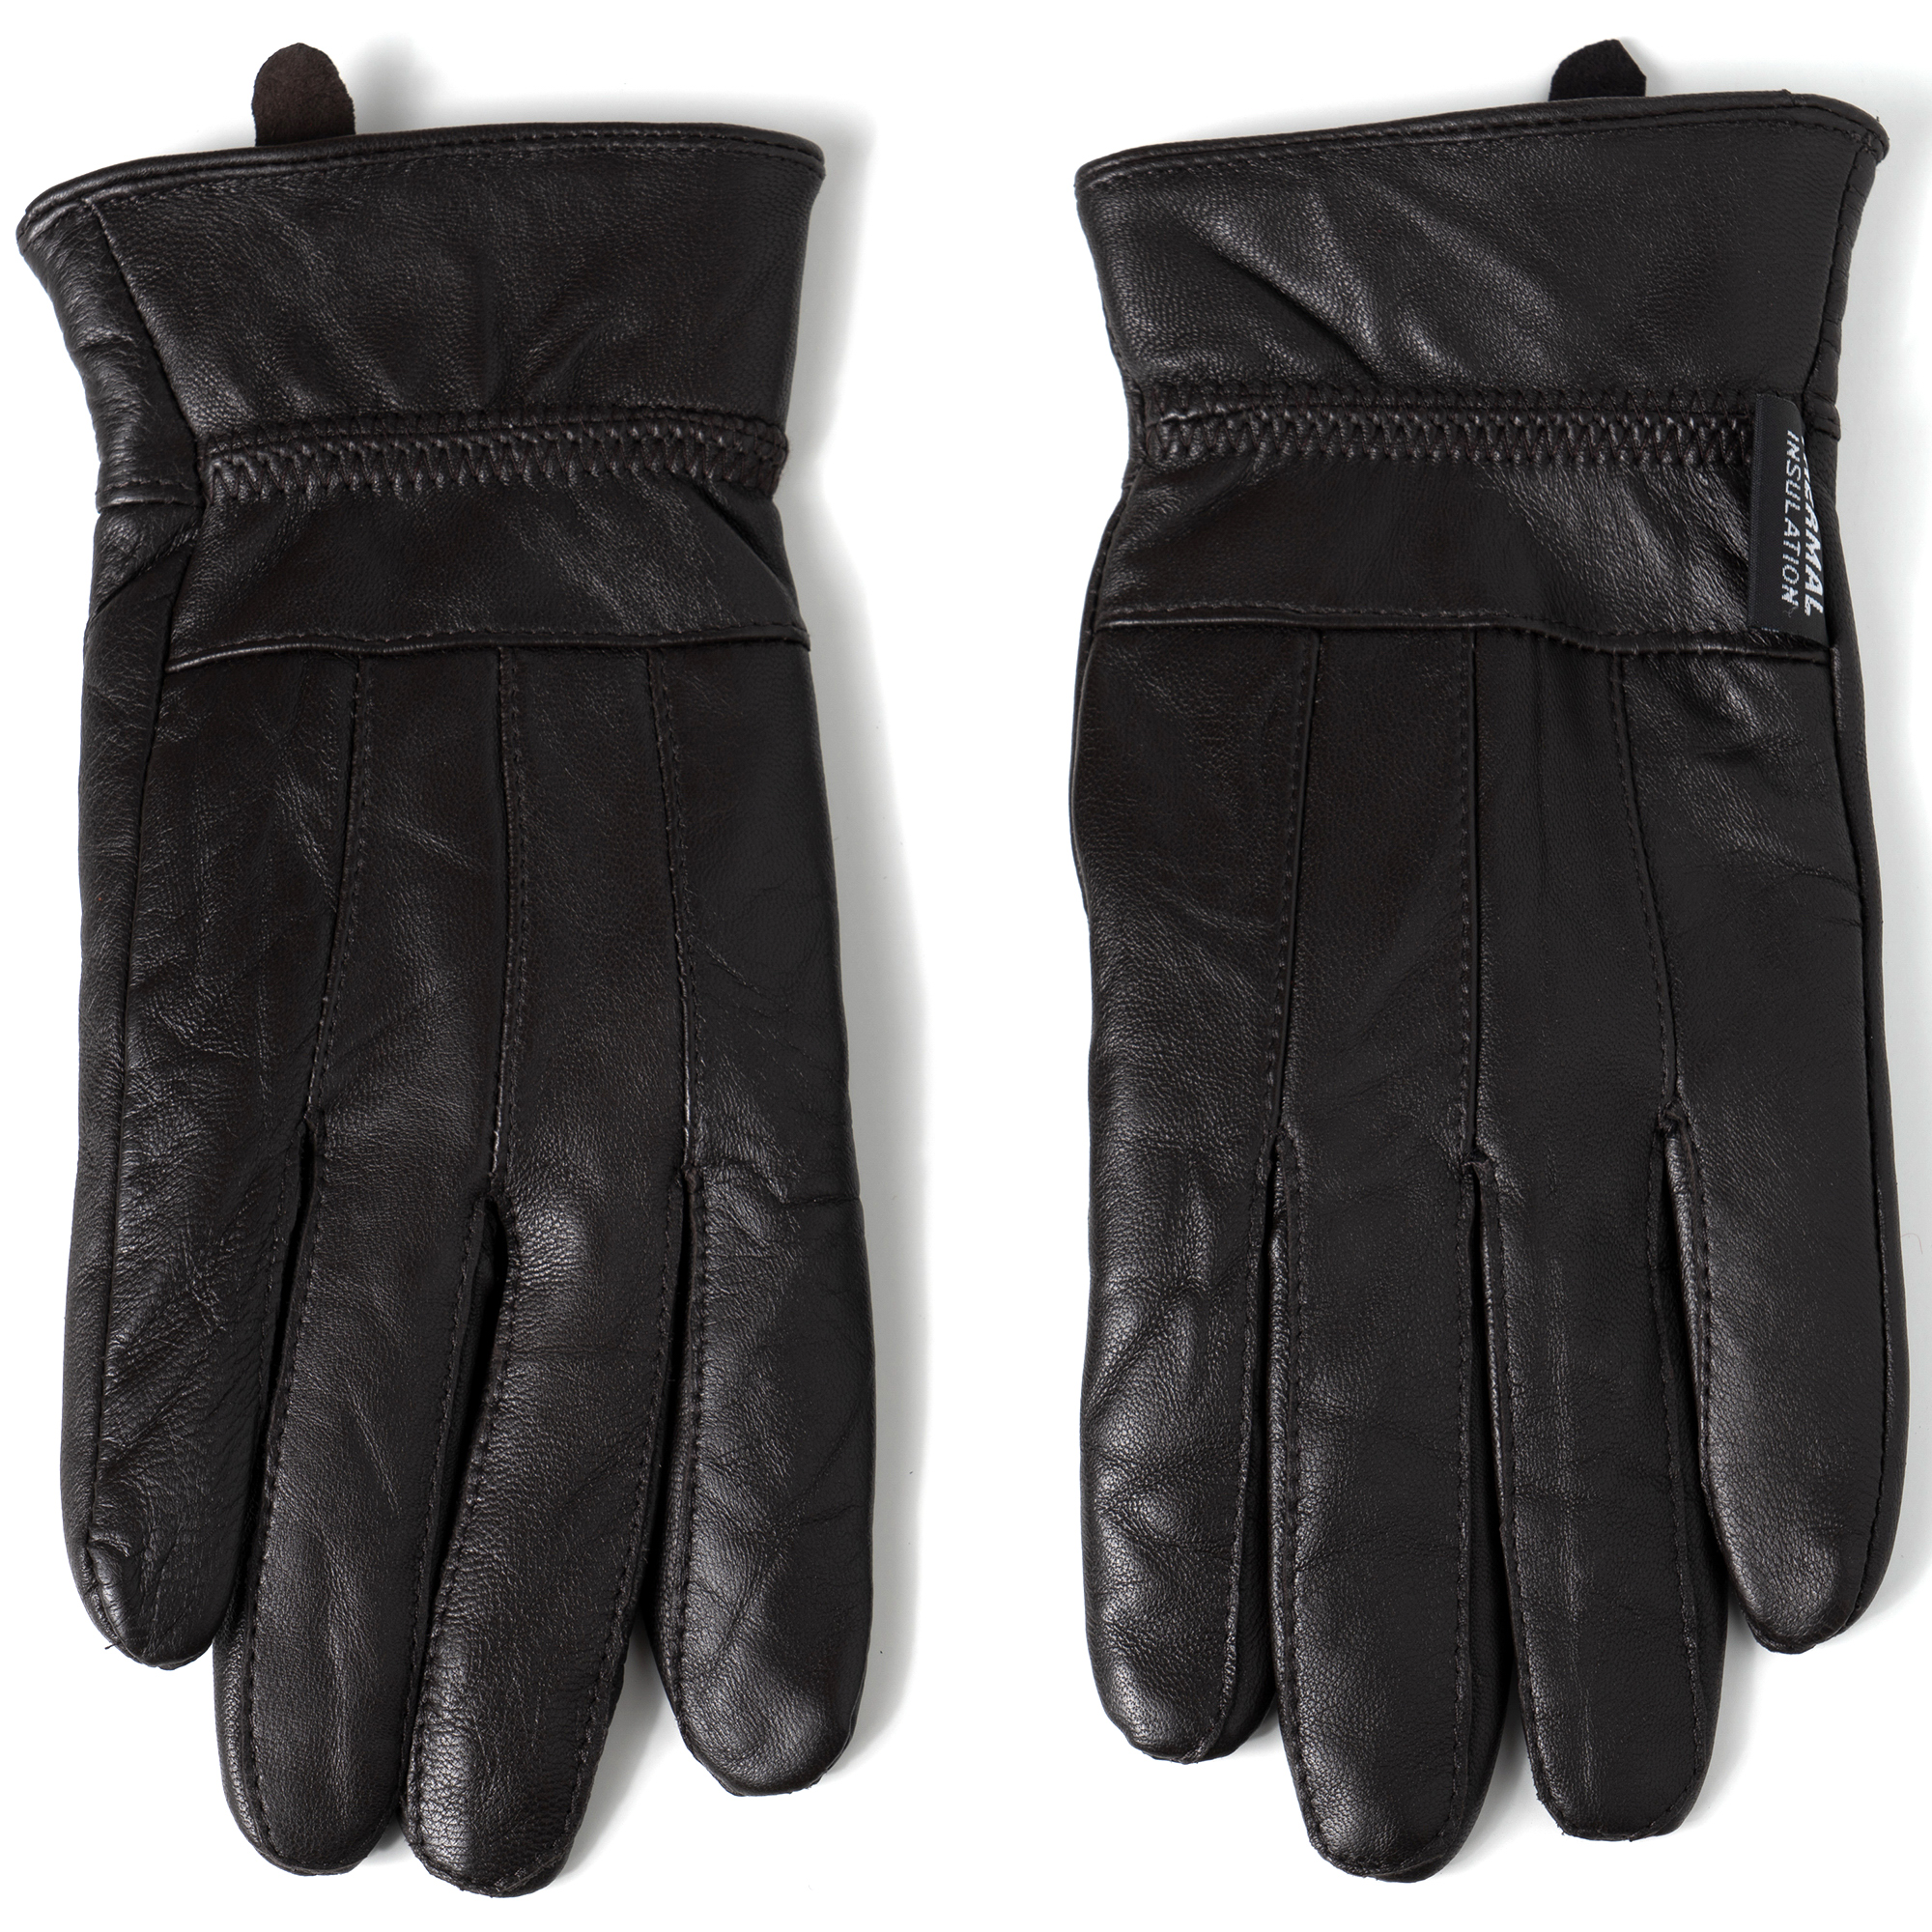 Alpine-Swiss-Womens-Touch-Screen-Gloves-Leather-Phone-Texting-Glove-Thermal-Warm thumbnail 26